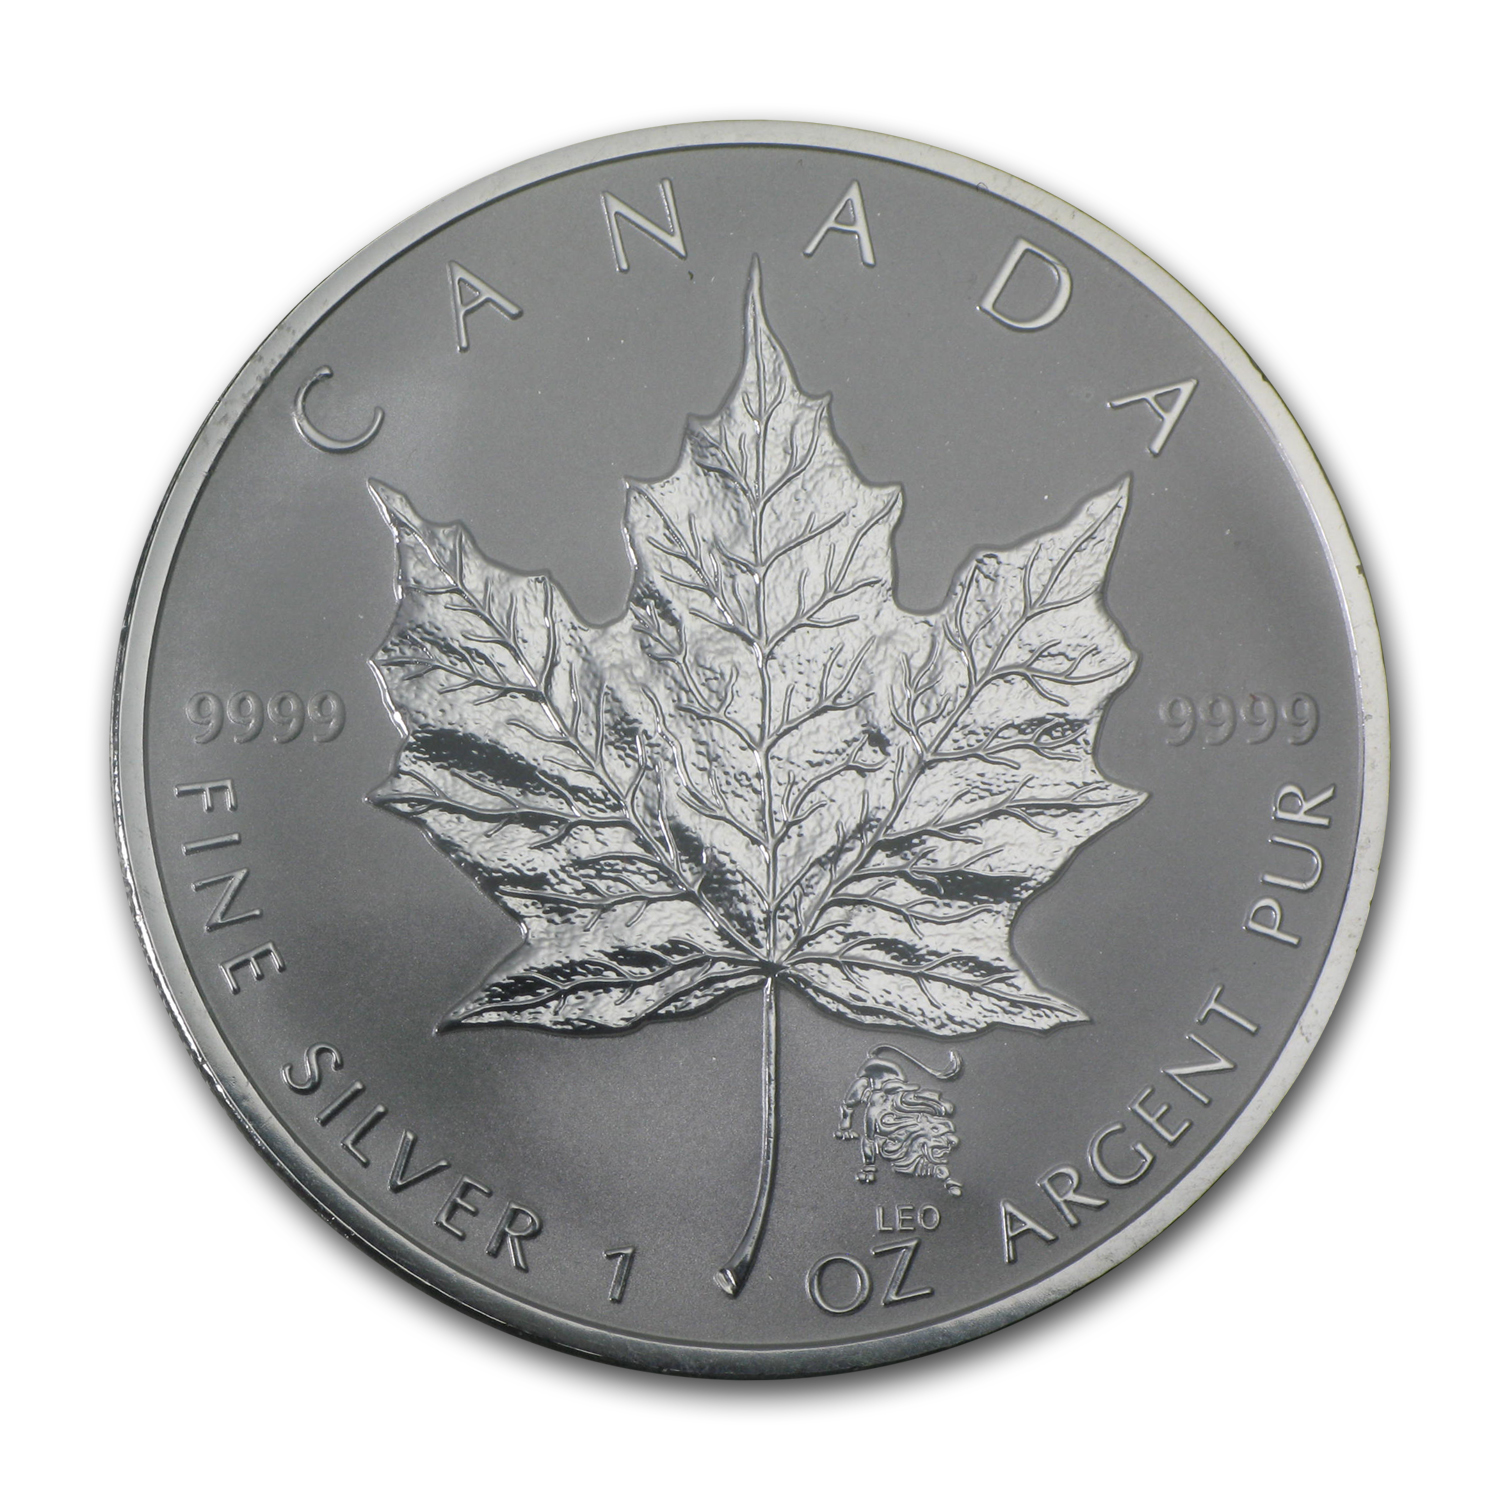 2004 Canada 1 oz Silver Maple Leaf Leo Zodiac Privy